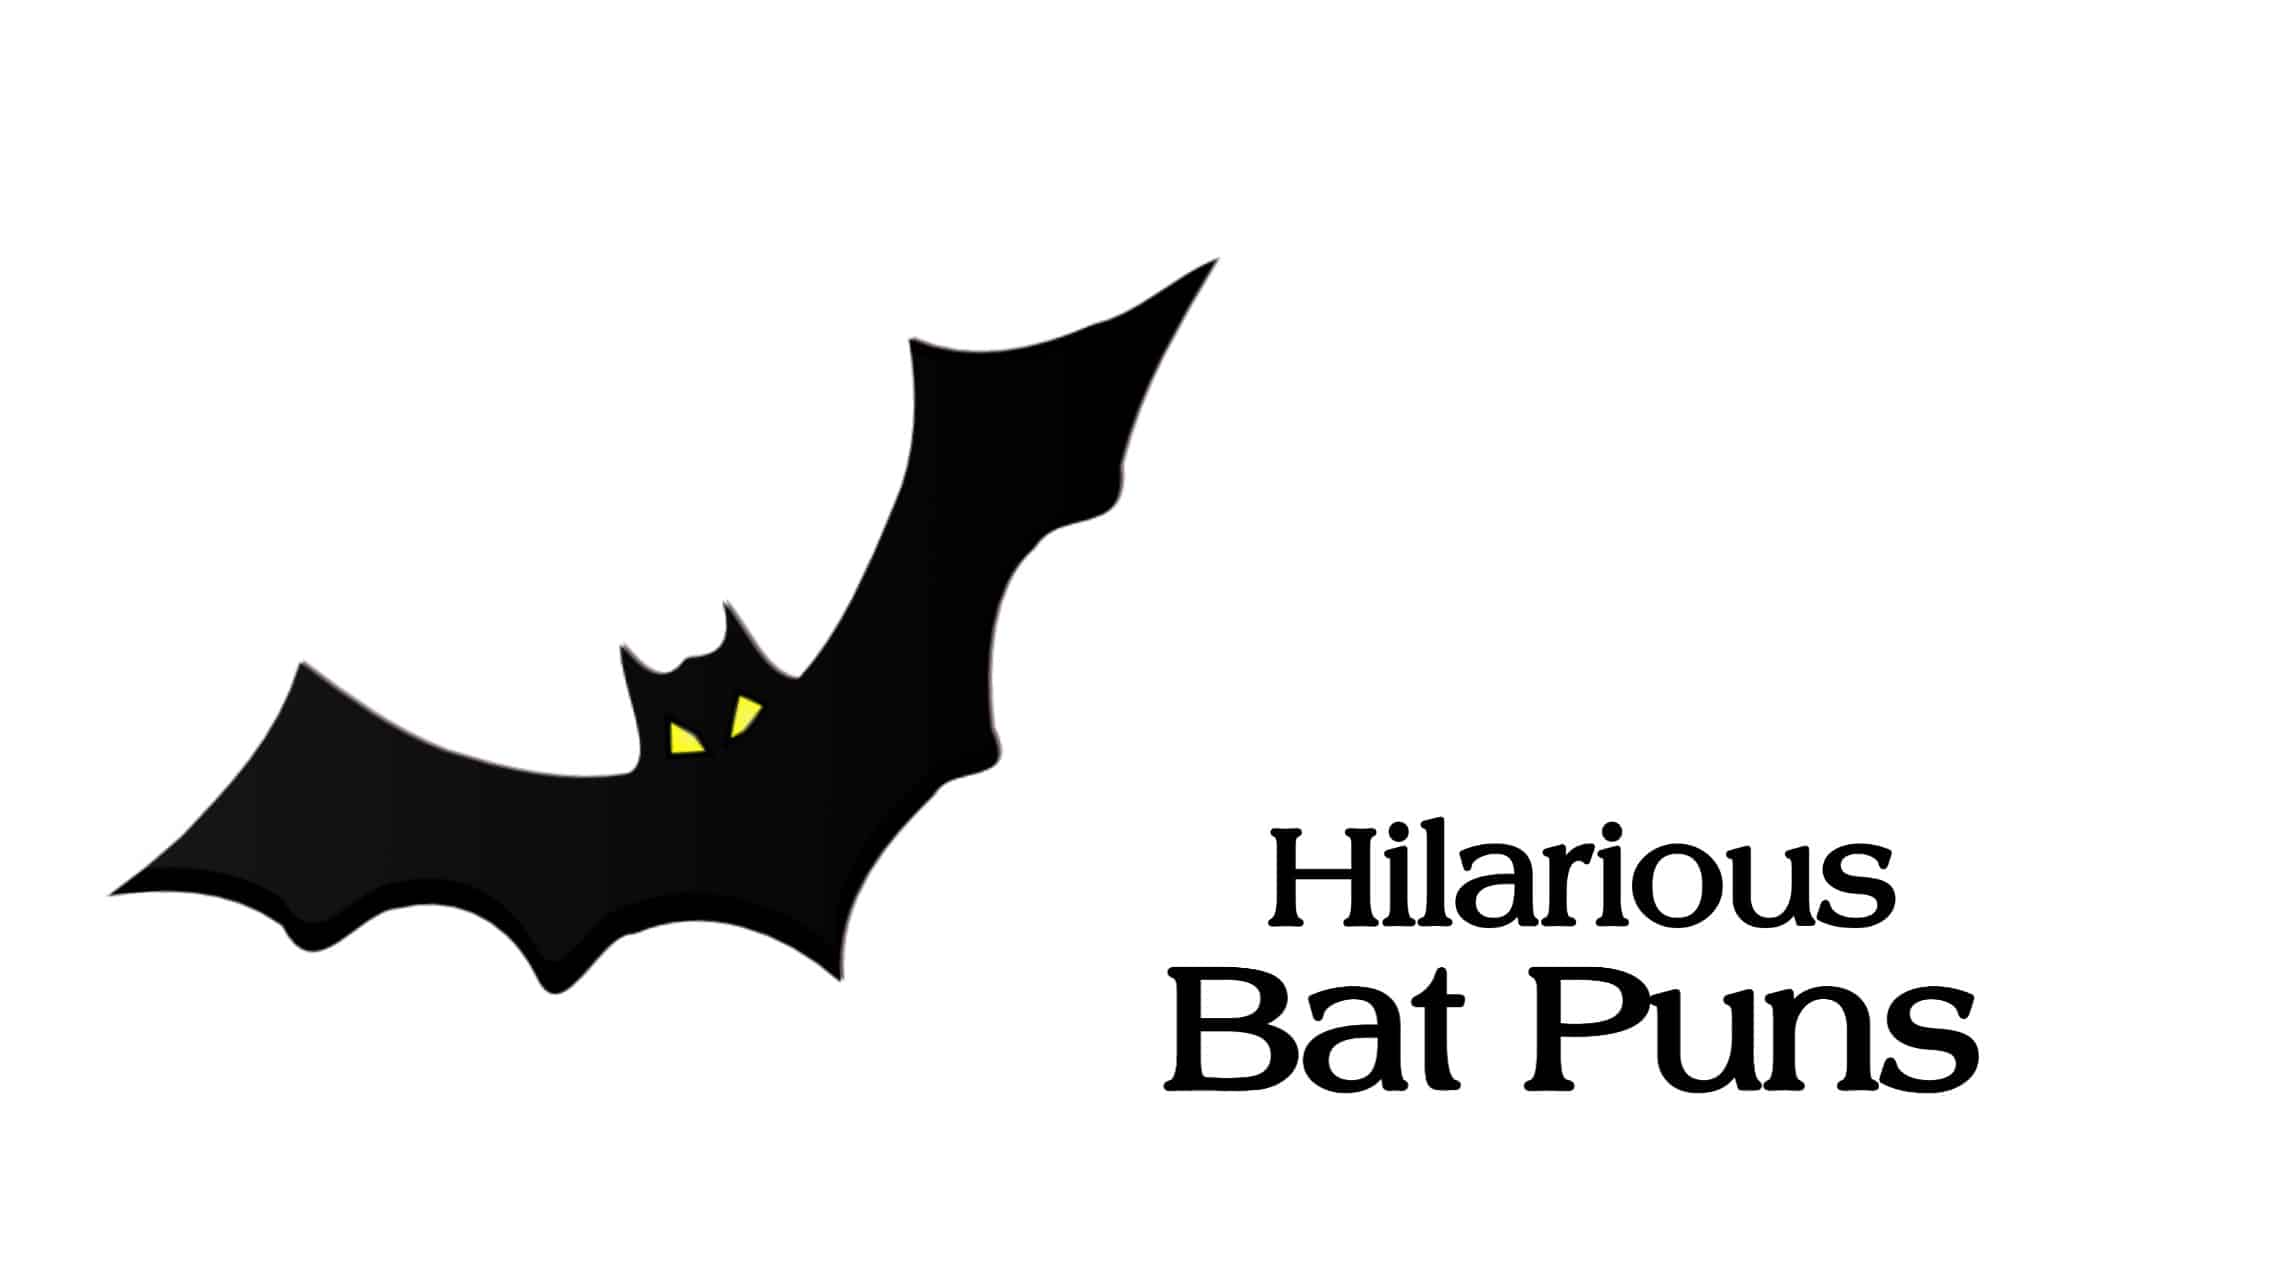 70+ Best Bat Puns To Make You Laugh